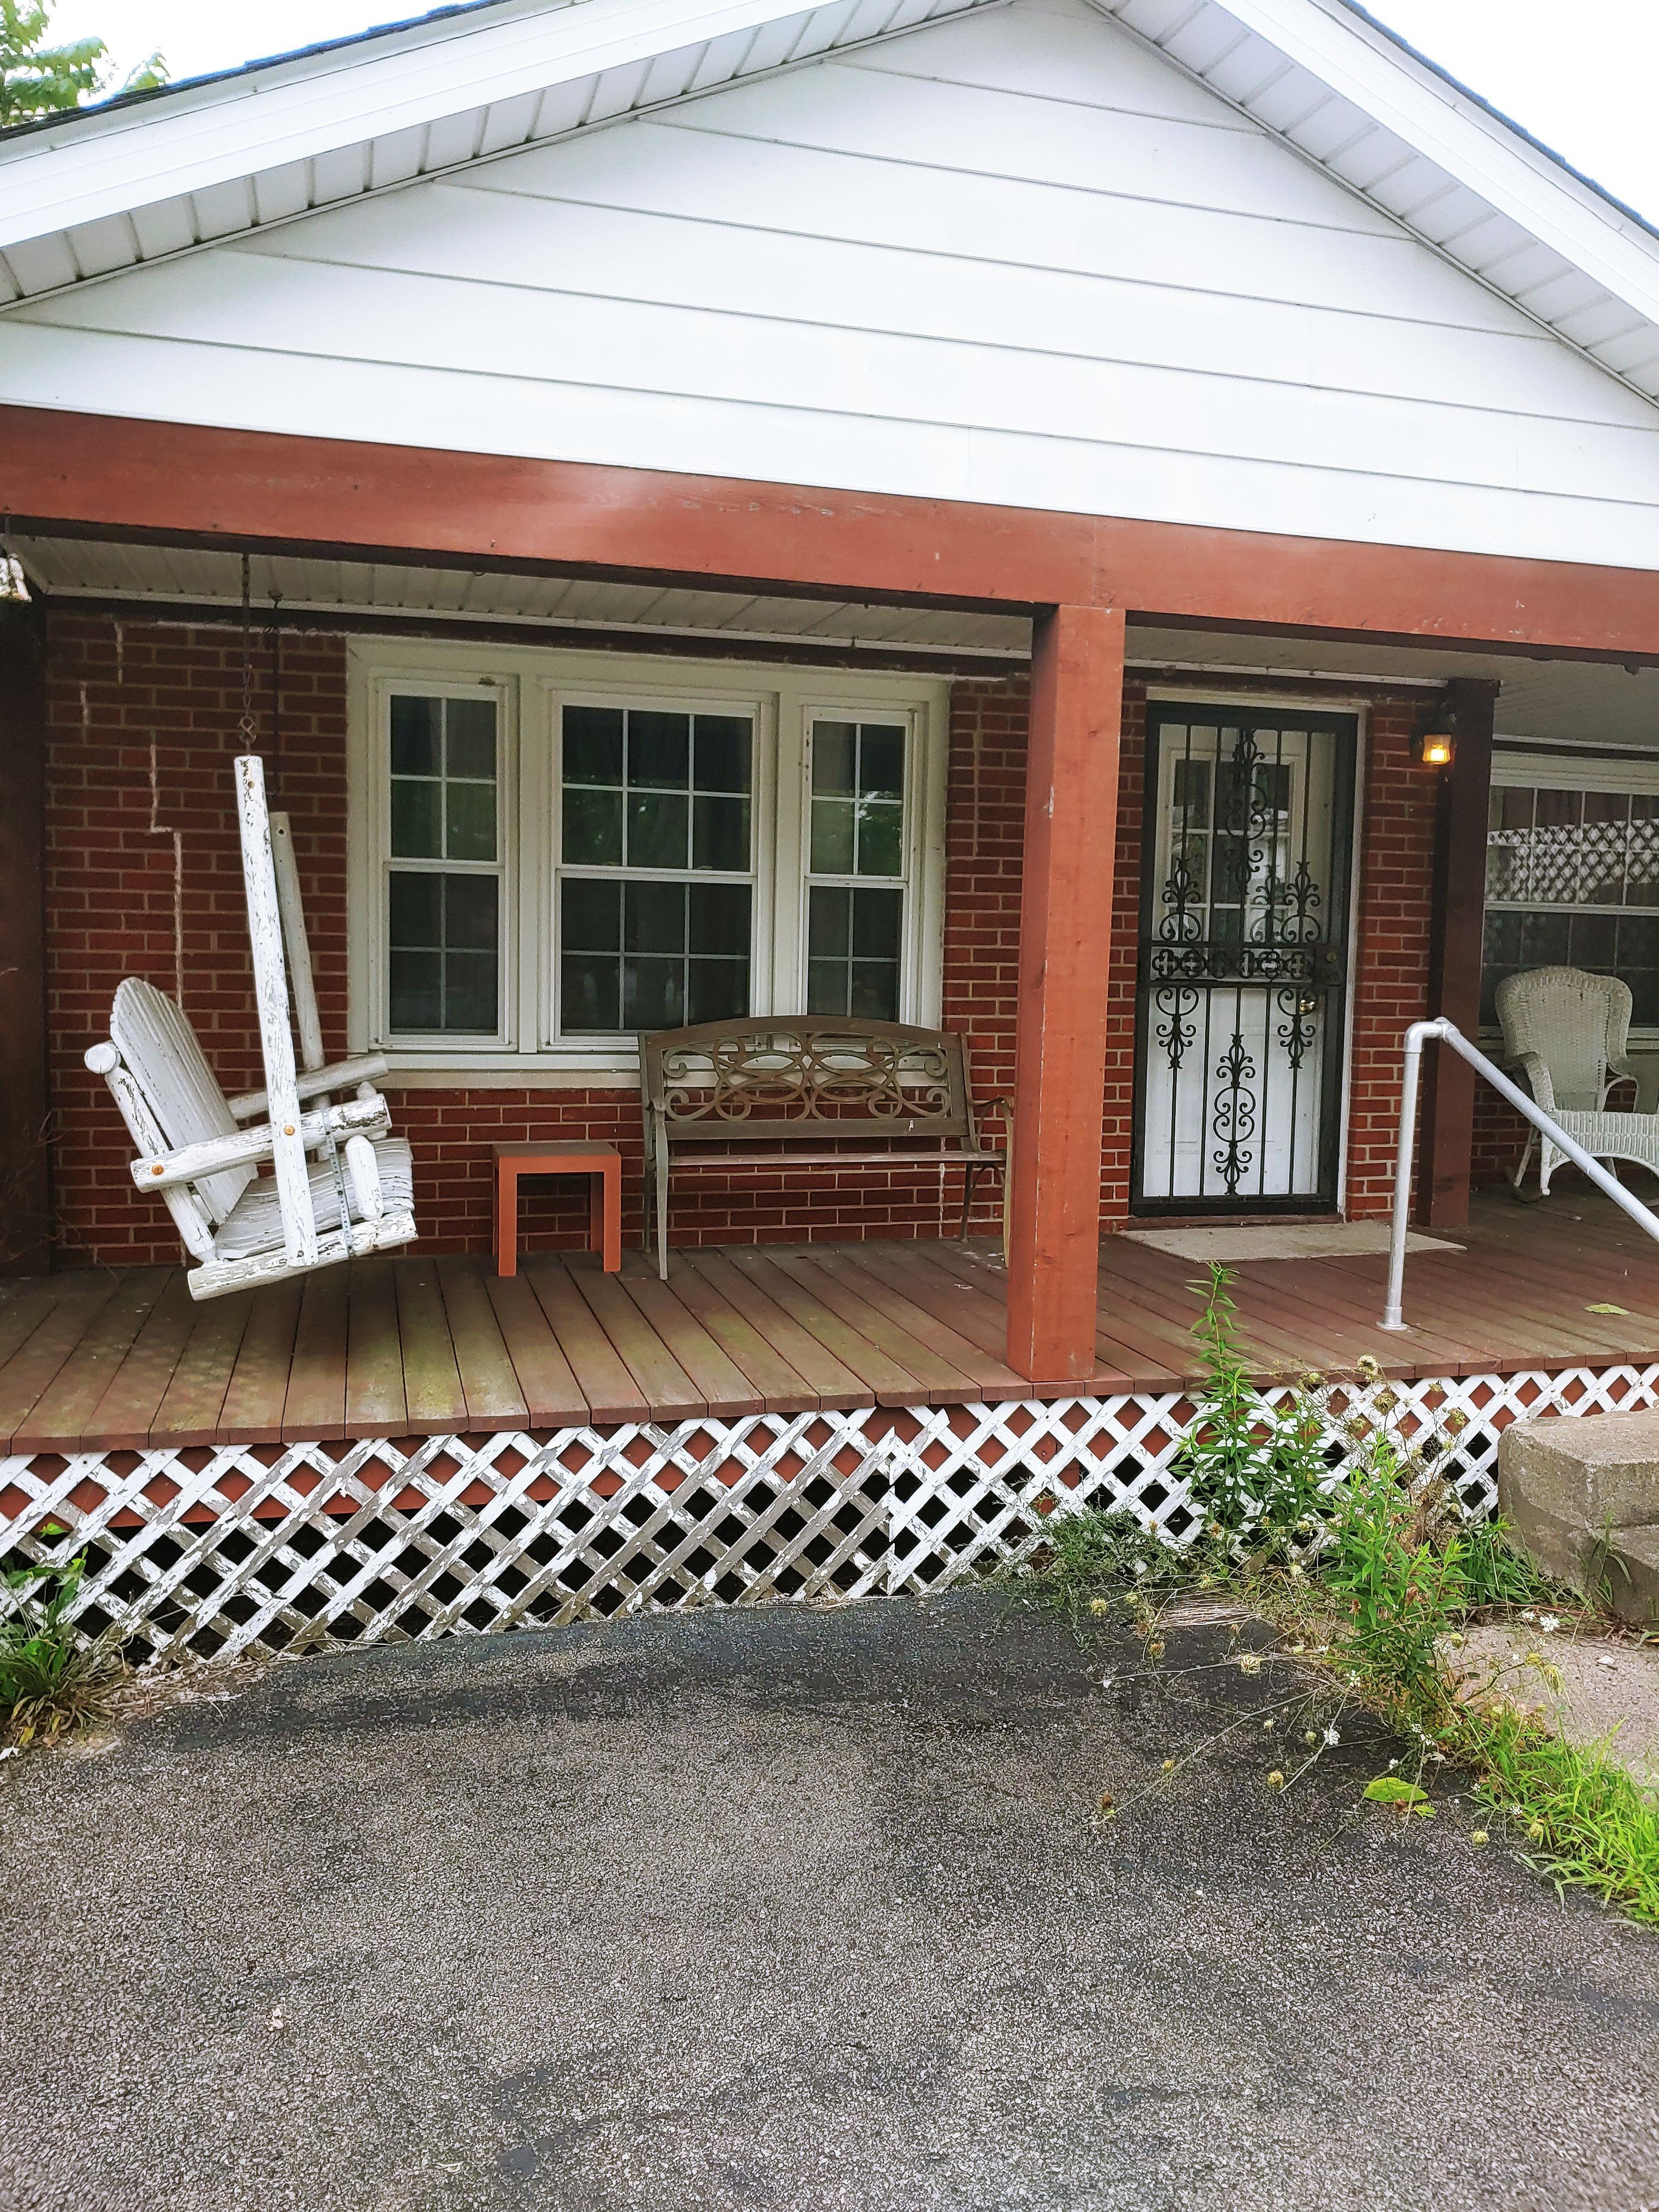 459 Old 122 Rd #122 (Image - 1)